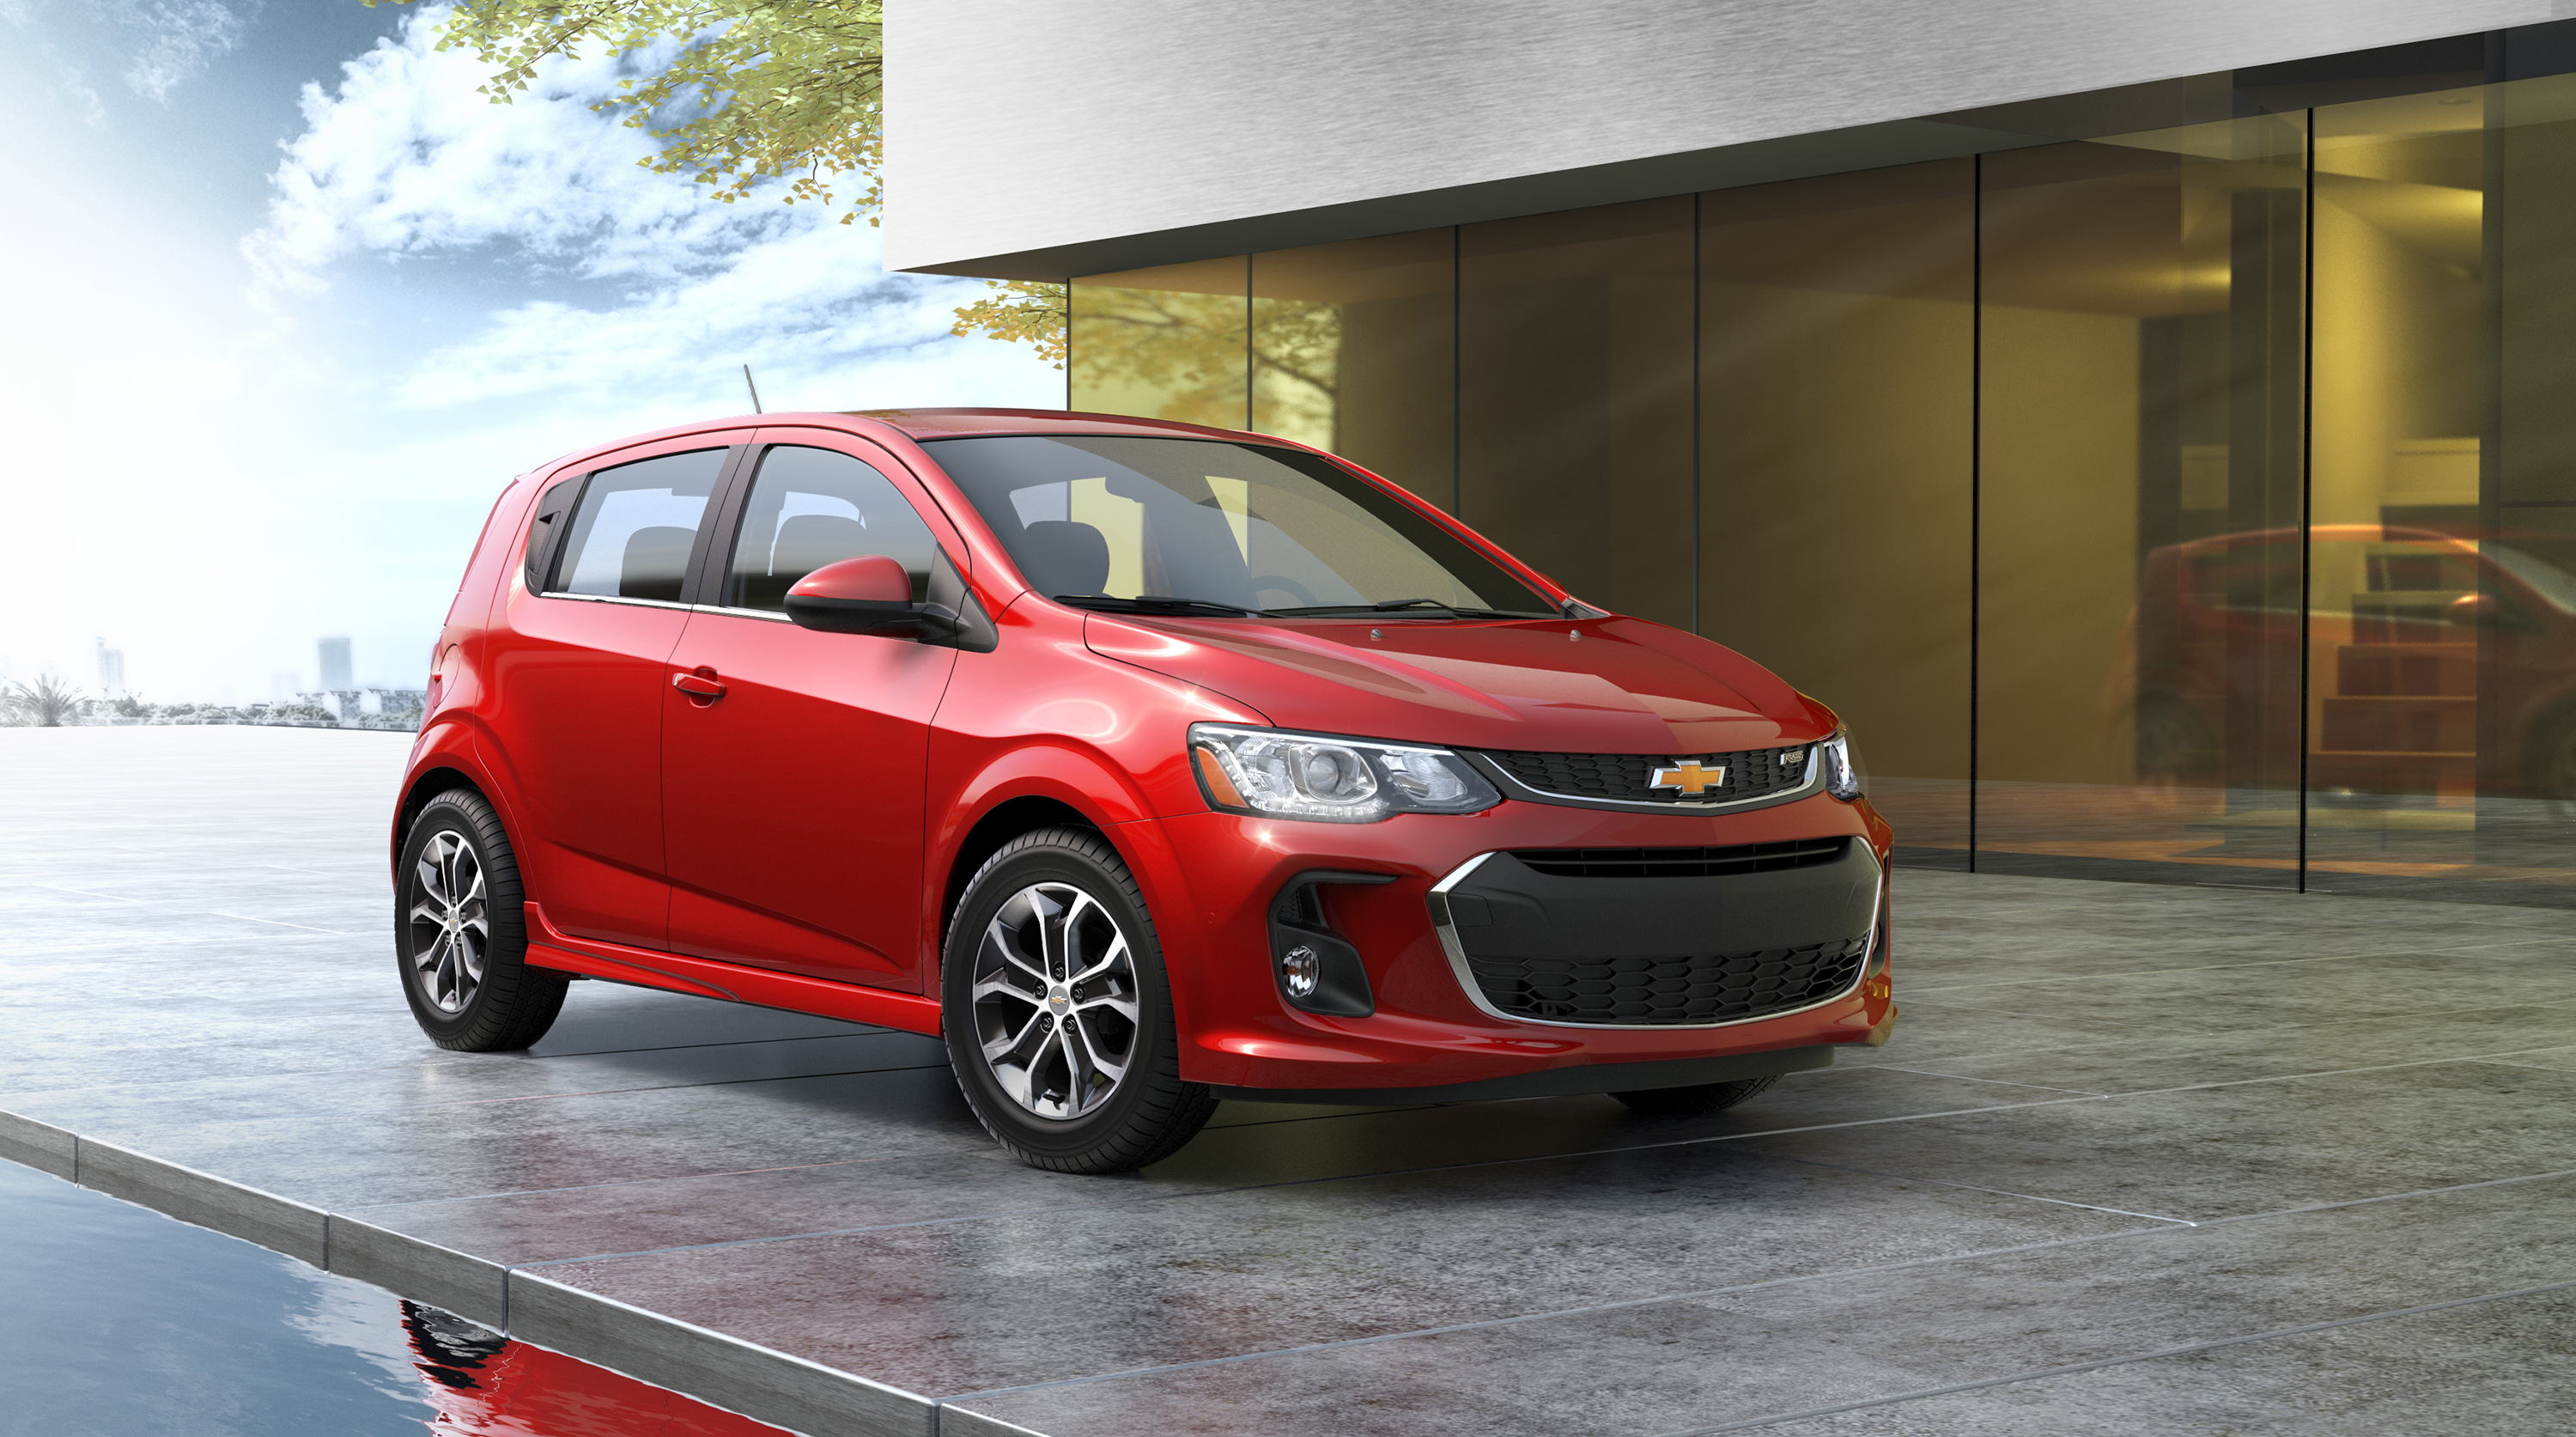 Chevrolet Sonic Owners Manual: Max Startup Volume